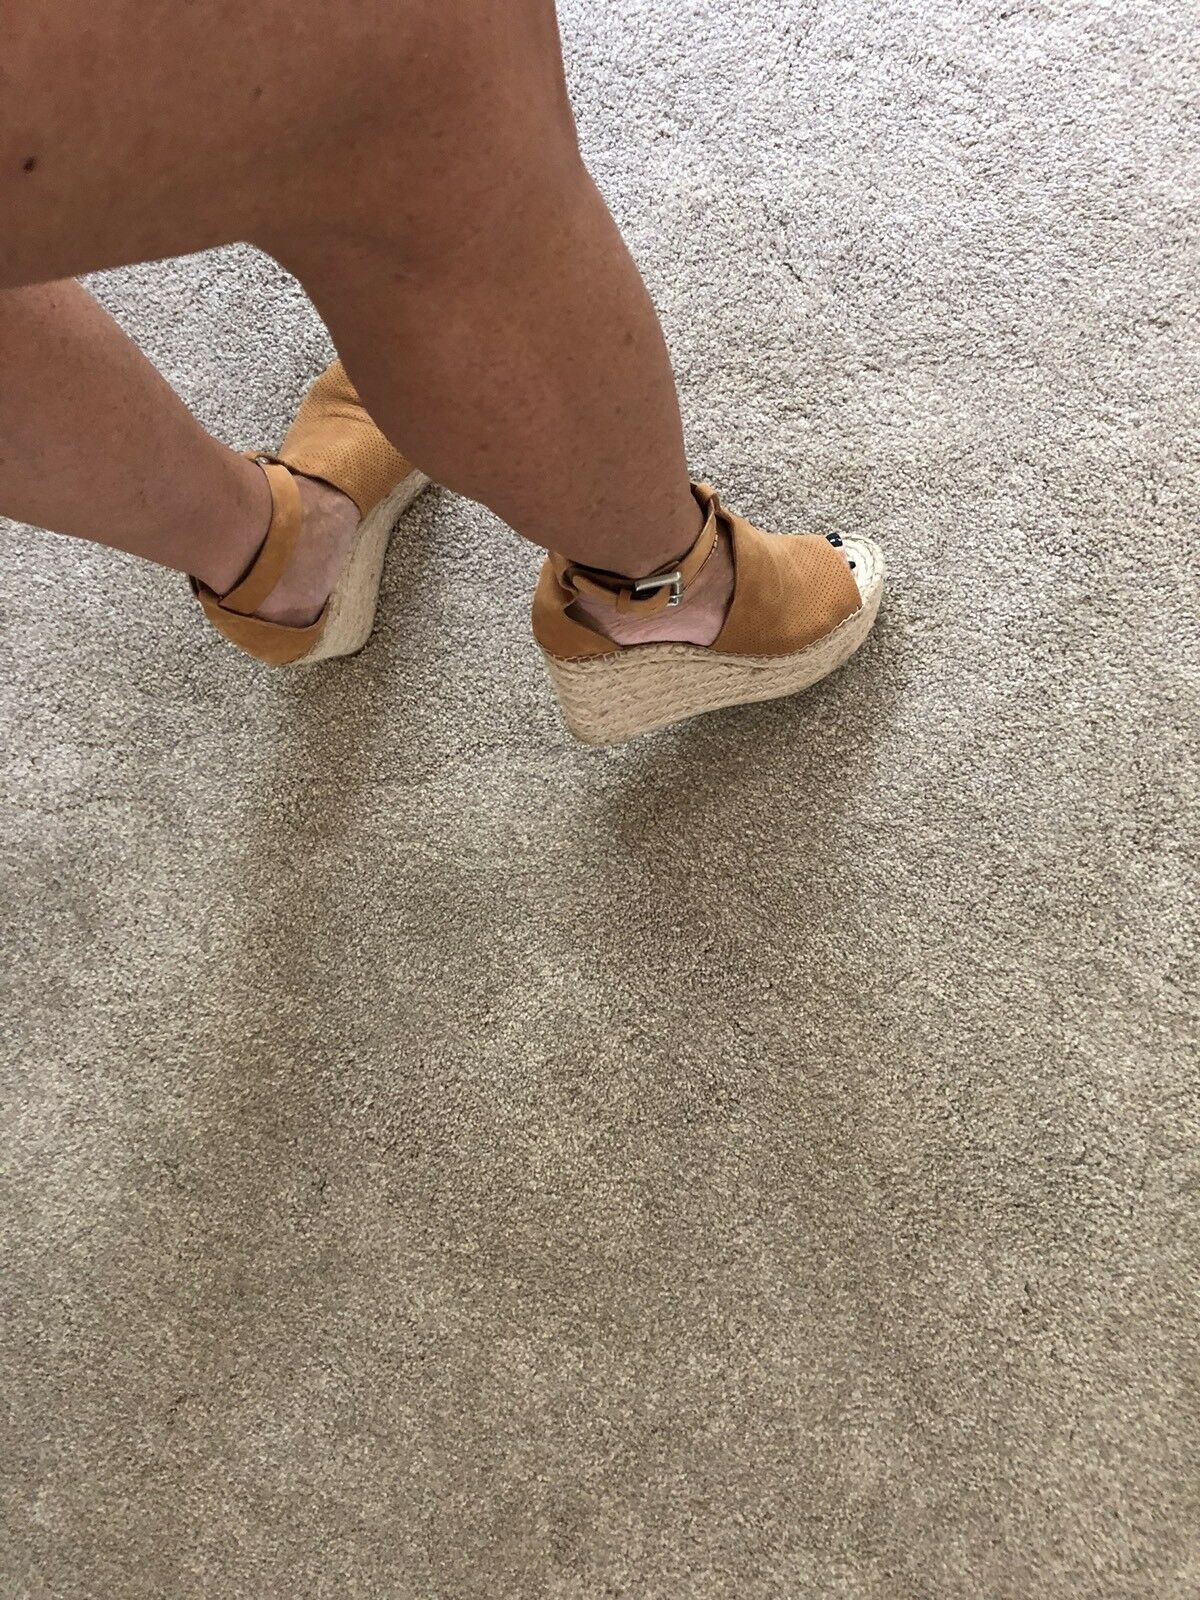 "Marc ""Annie"" Fisher Perforated Espadrilles 7.5US ""Annie"" Marc Style Sandales Wedges 76a150"